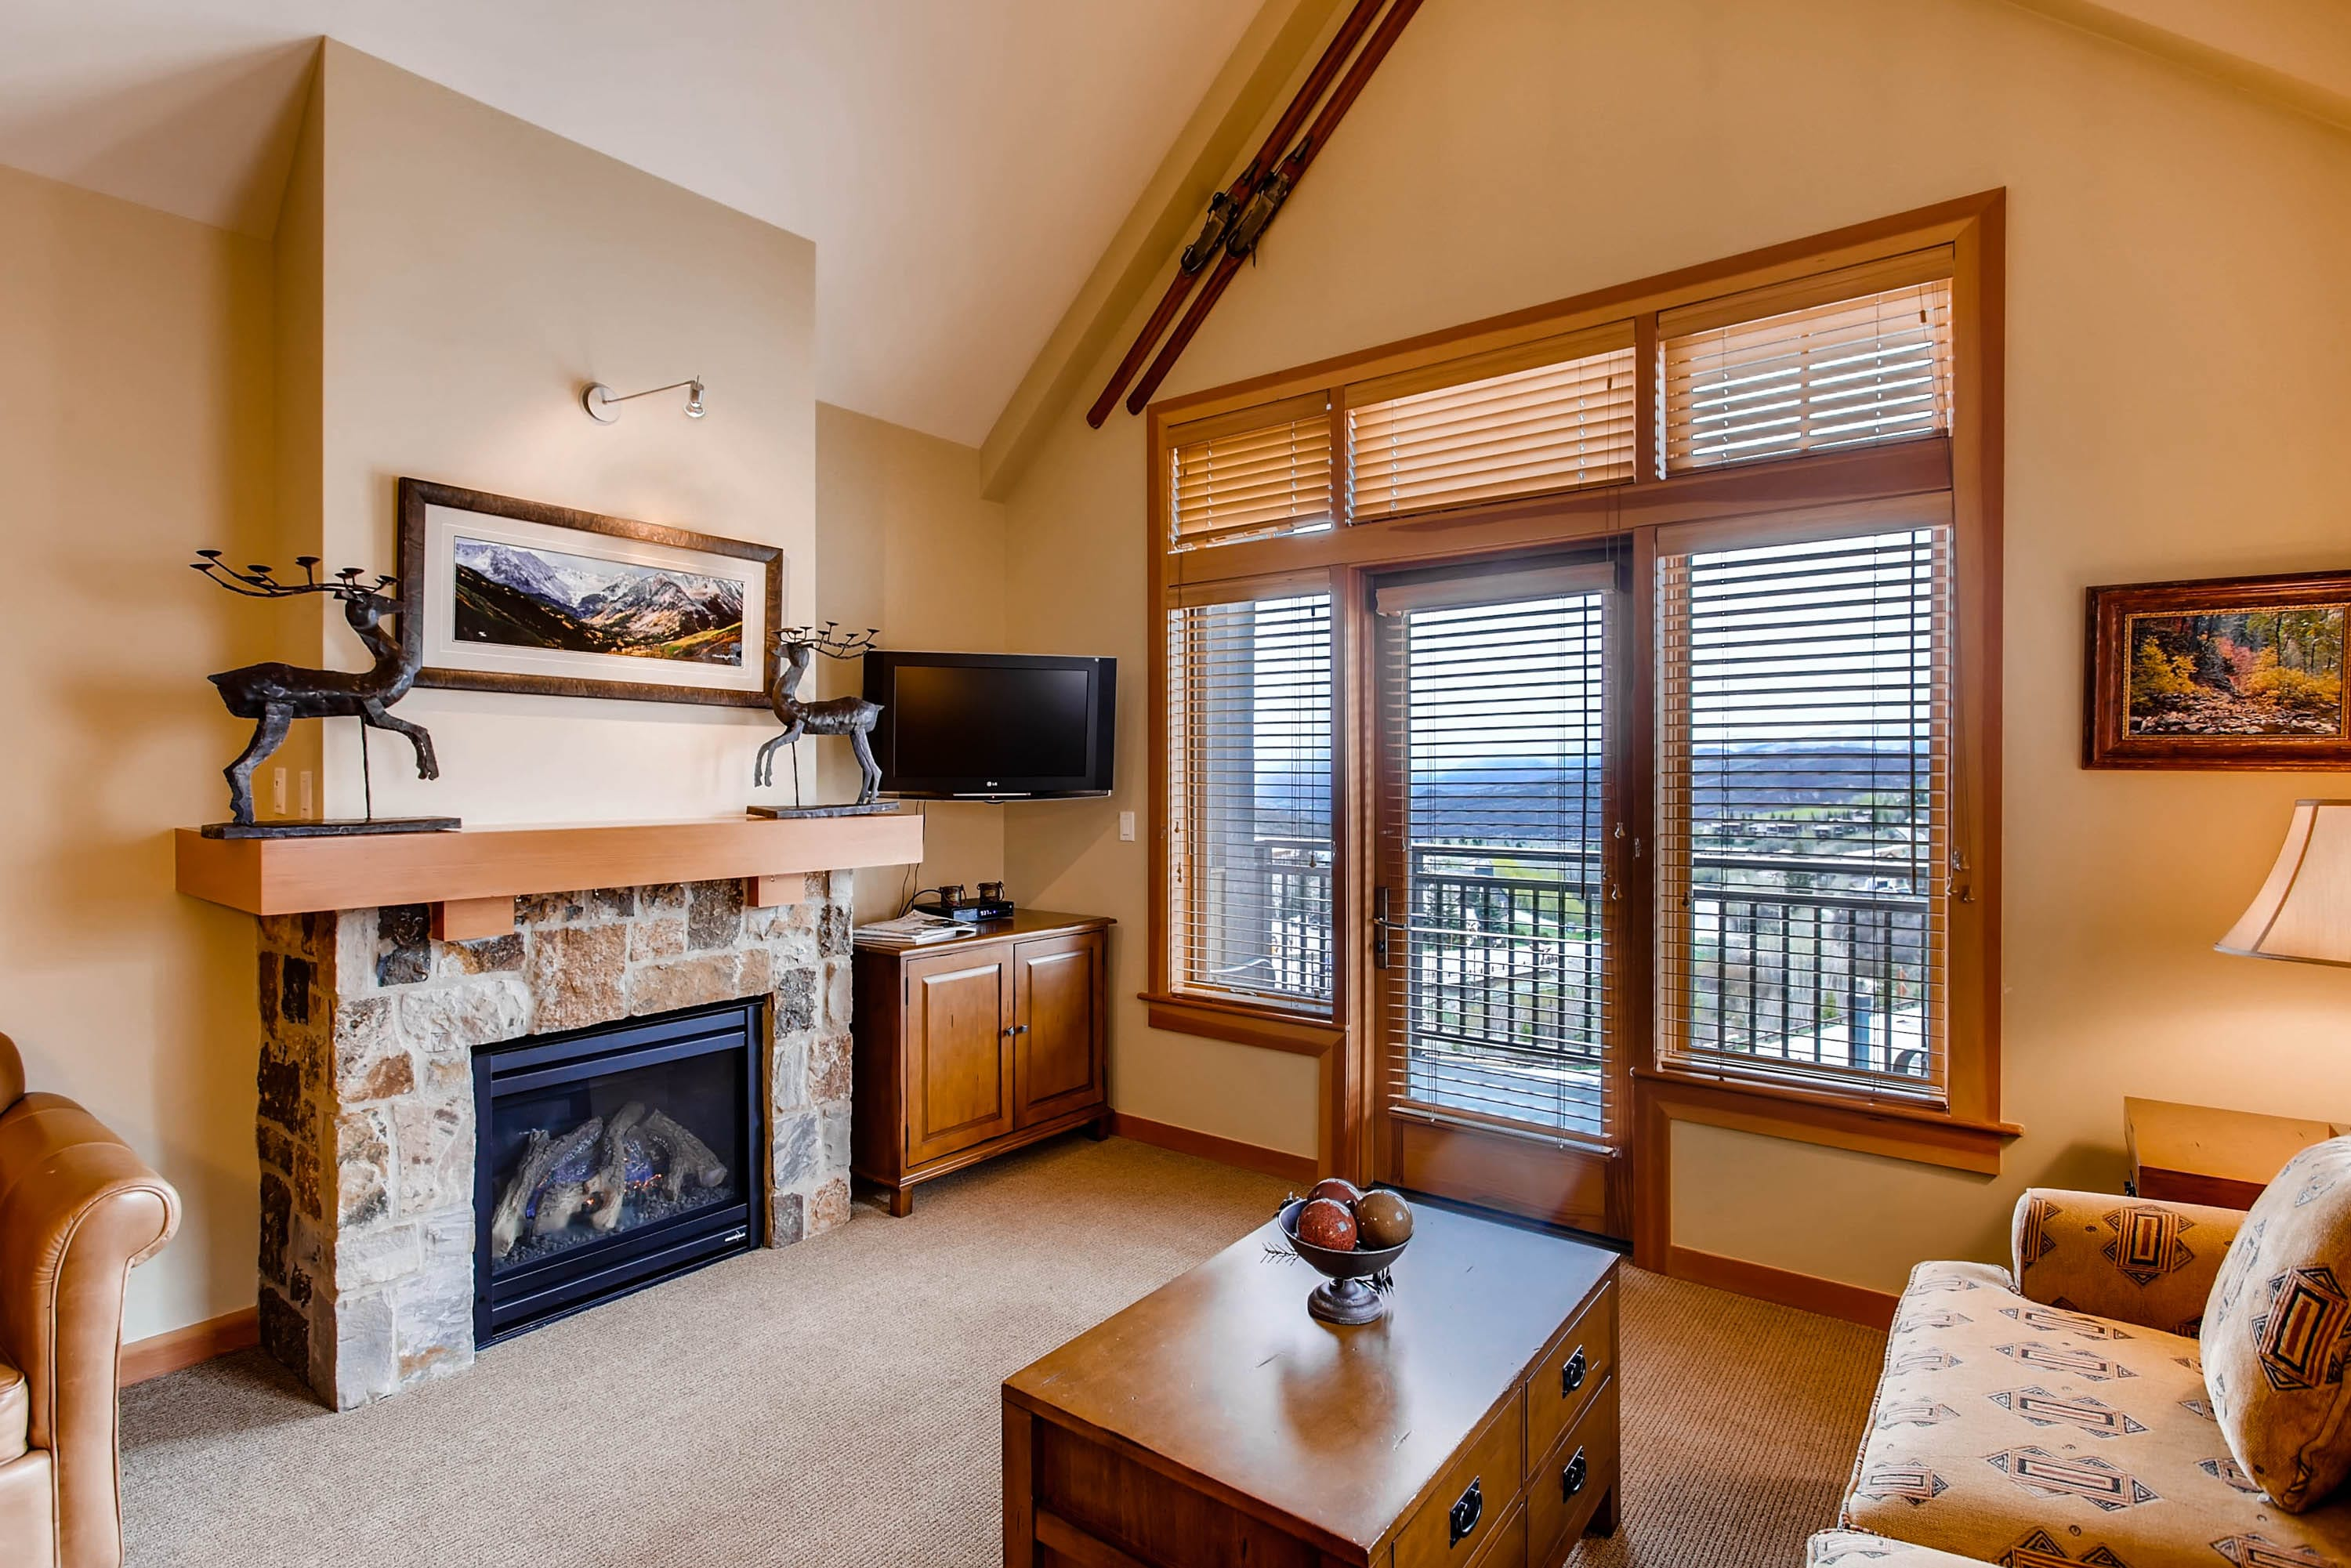 Vaulted ceilings and mountain décor provide a luxury lodge experience